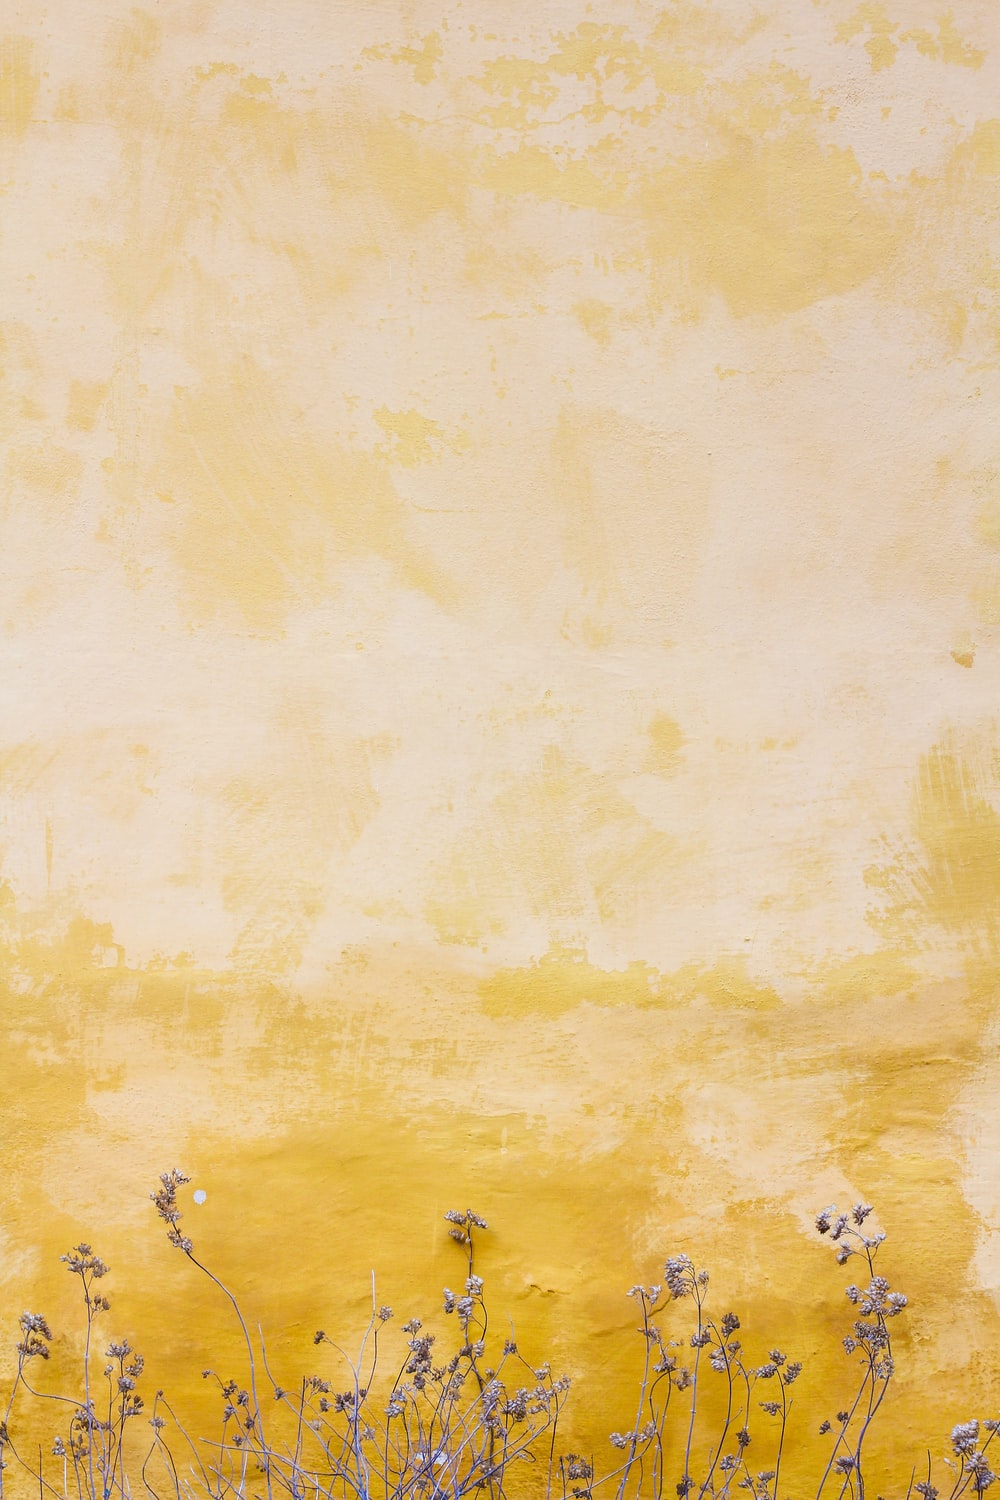 Latest Hd Aesthetic Pictures Yellow Wallpaper Wallpaper